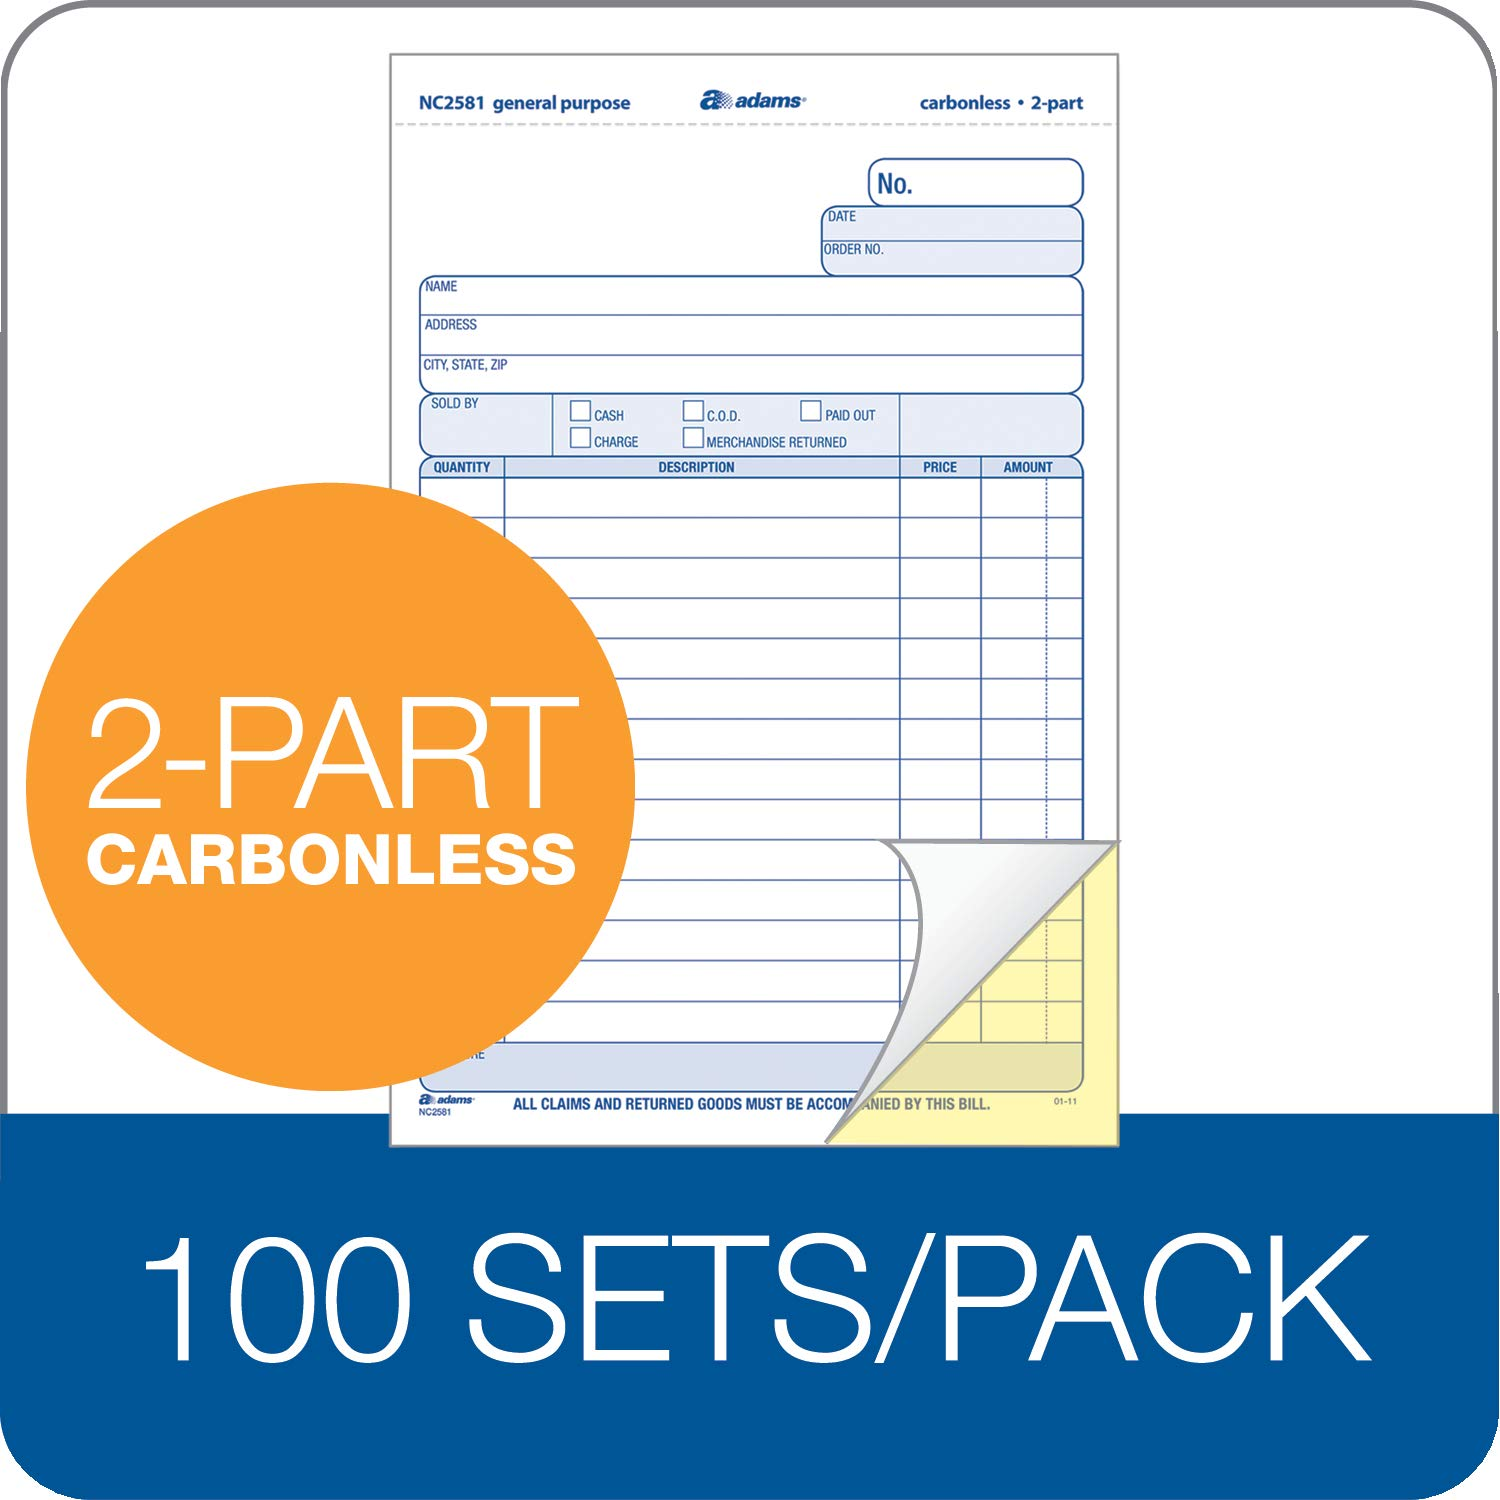 Adams General Purpose Unit Sets, 5.67 x 8.5 Inches, 2-Part, Carbonless, White/Canary, 100 Sets per Pack (NC2581) by Adams (Image #4)